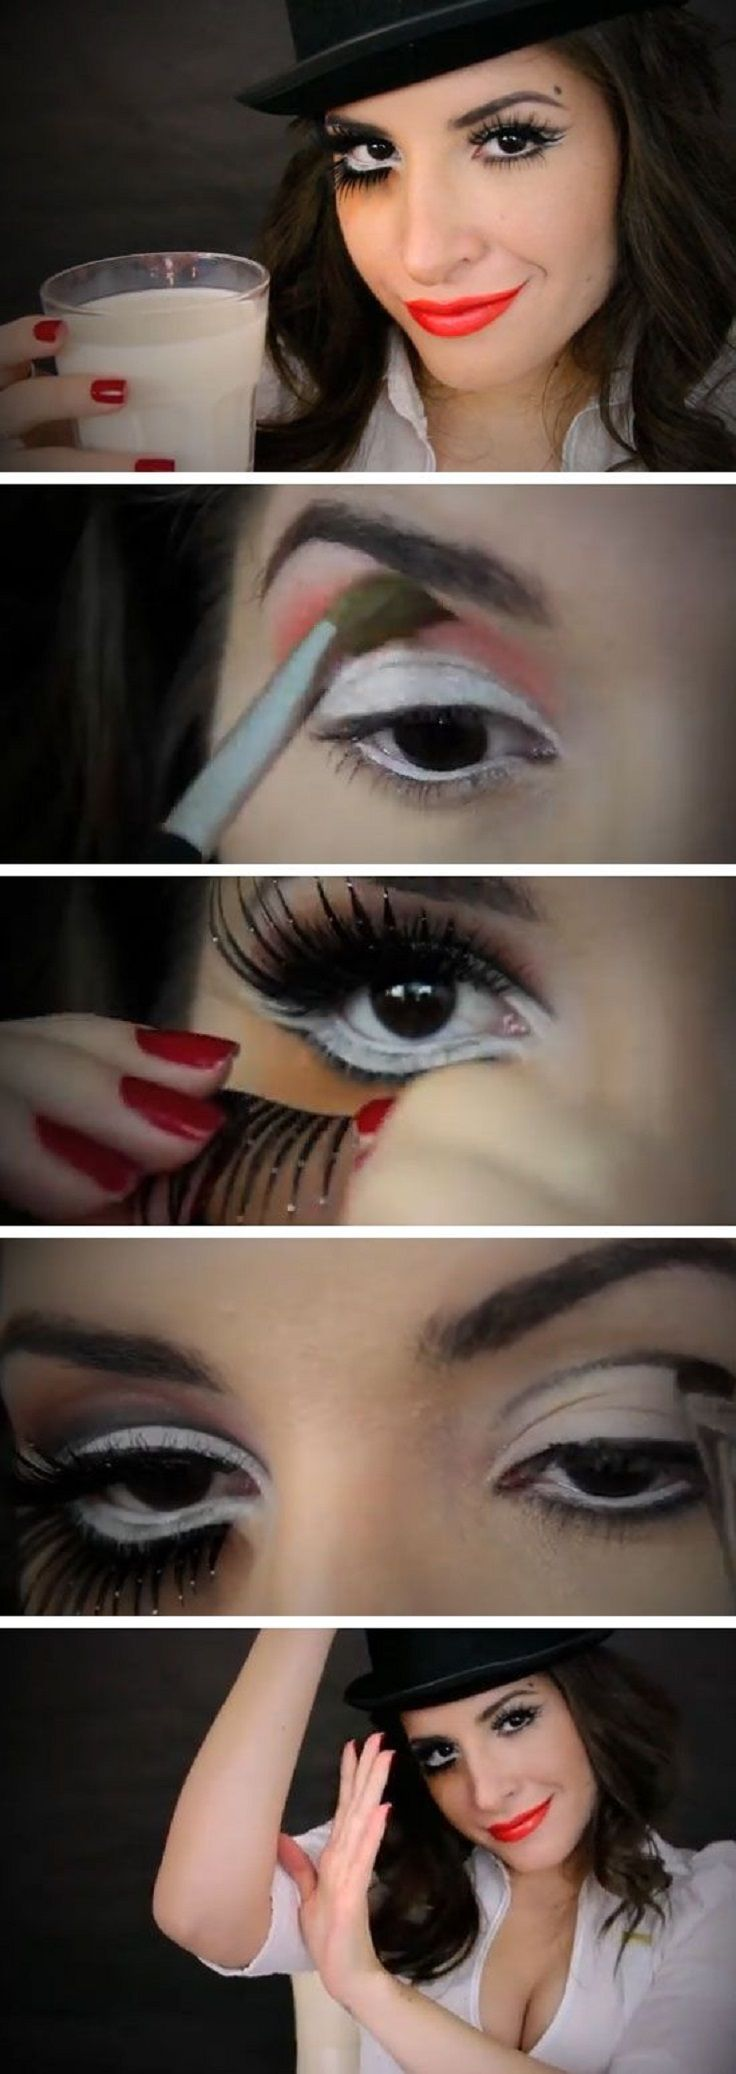 Top+10+Last+Minute+Makeup+Tutorials+For+Halloween